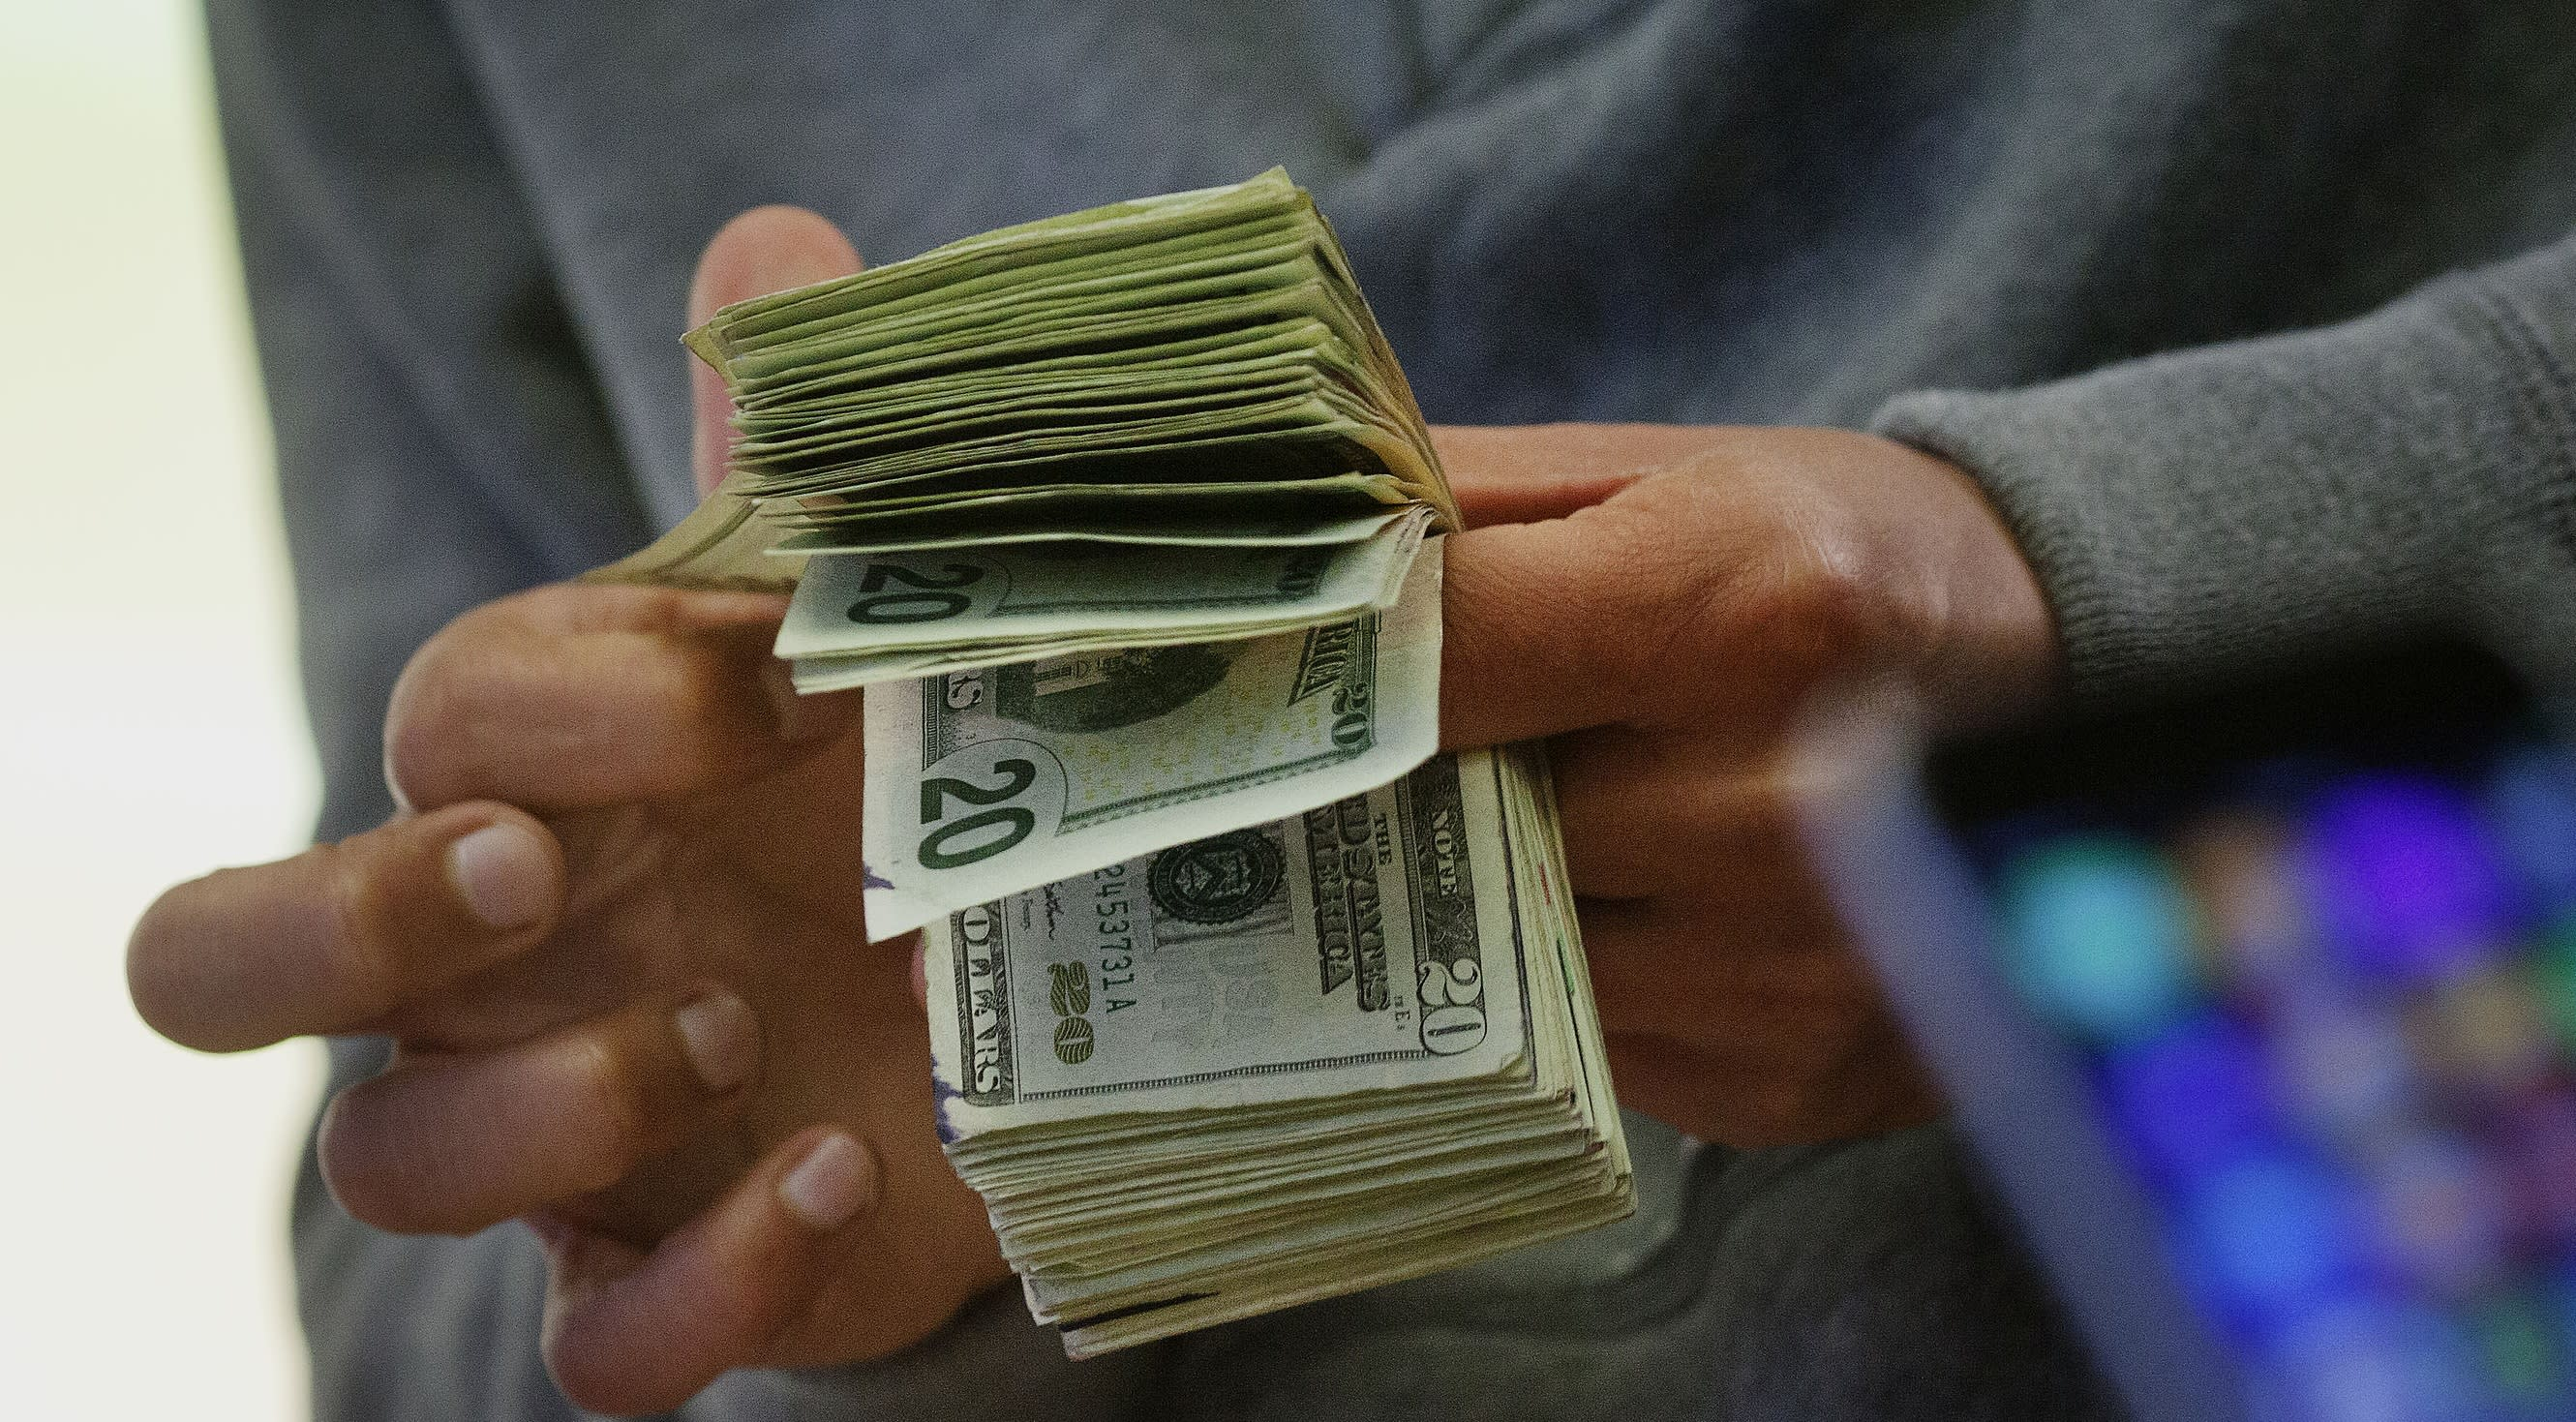 10 Things We Overpay The Most For